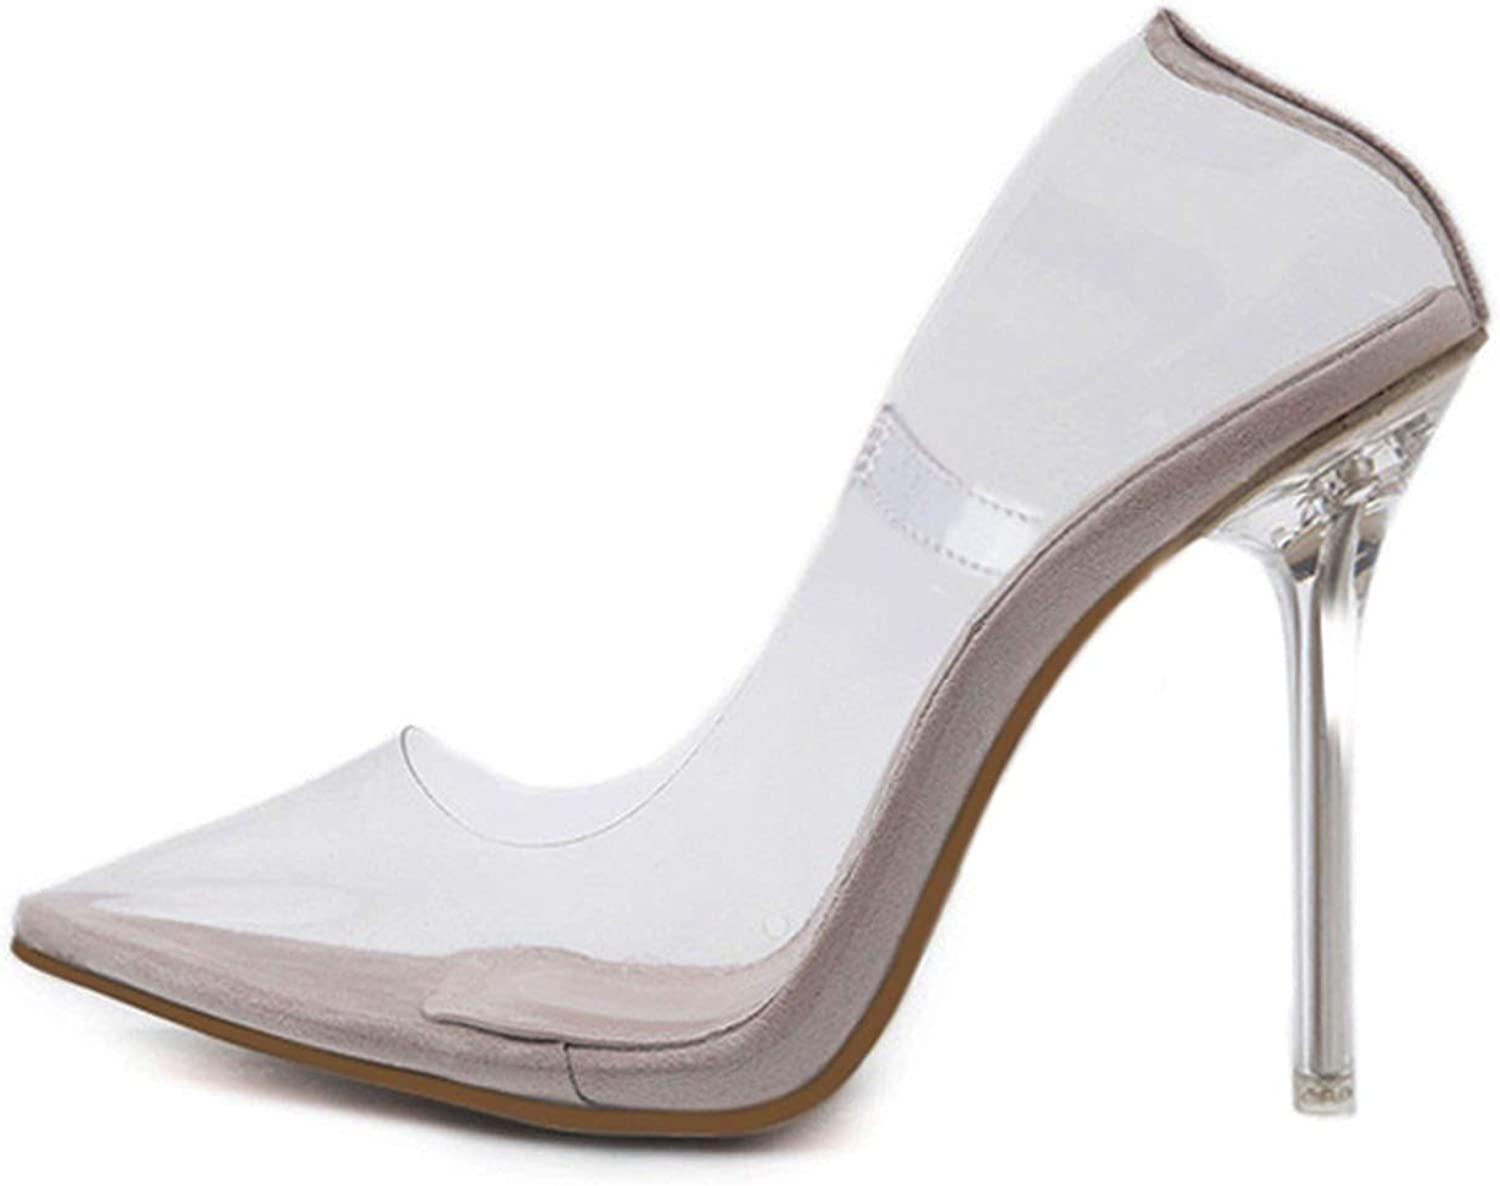 Fortune-god Clear PVC Transparent Pumps Sandals High Heels Point Toes Womens Party shoes Nightclub,Apricot,10